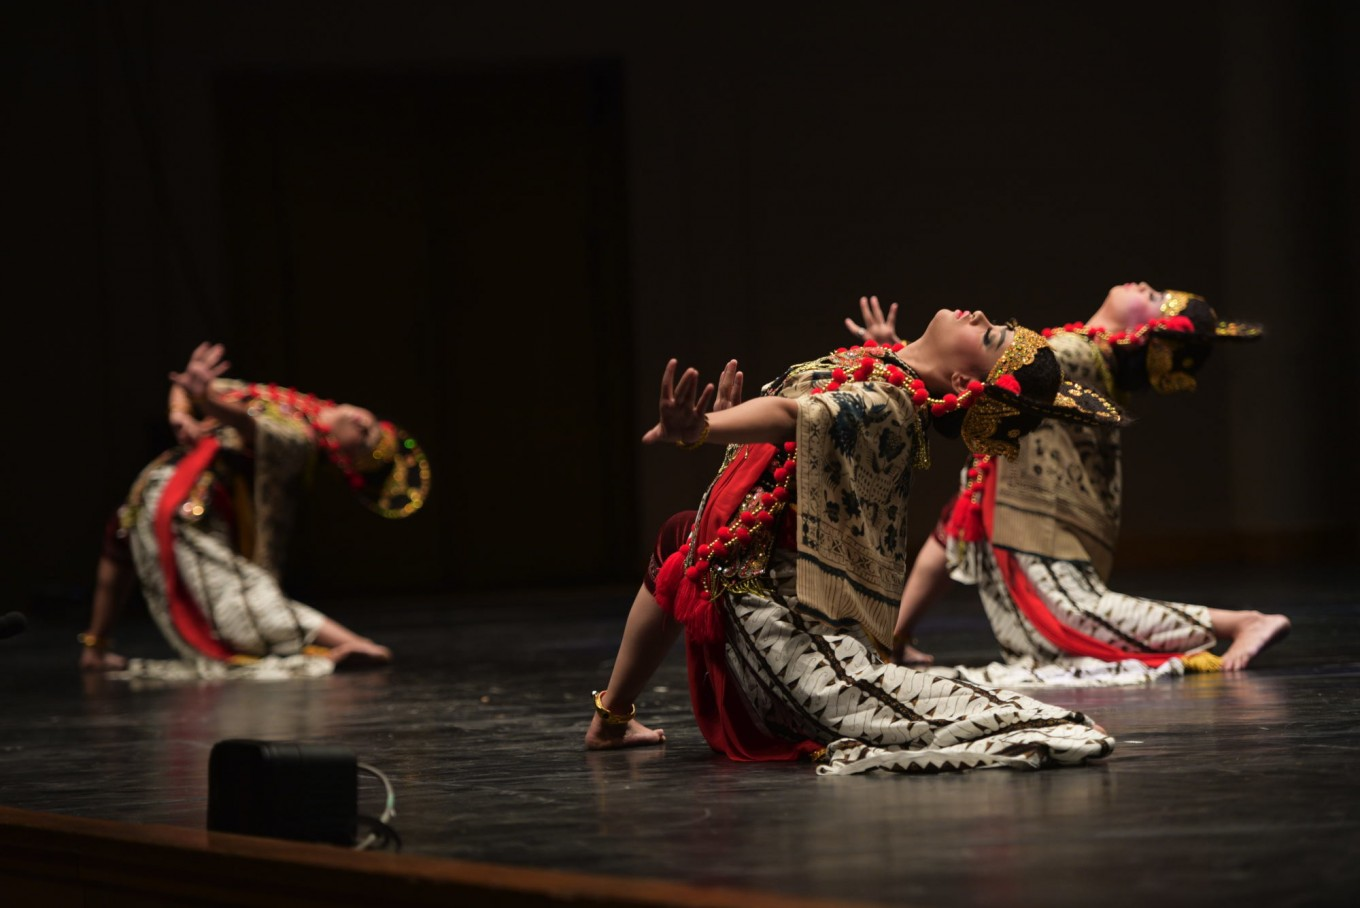 The Nani Topeng Losari dance was among the opening acts at Europalia Arts Festival Indonesia.